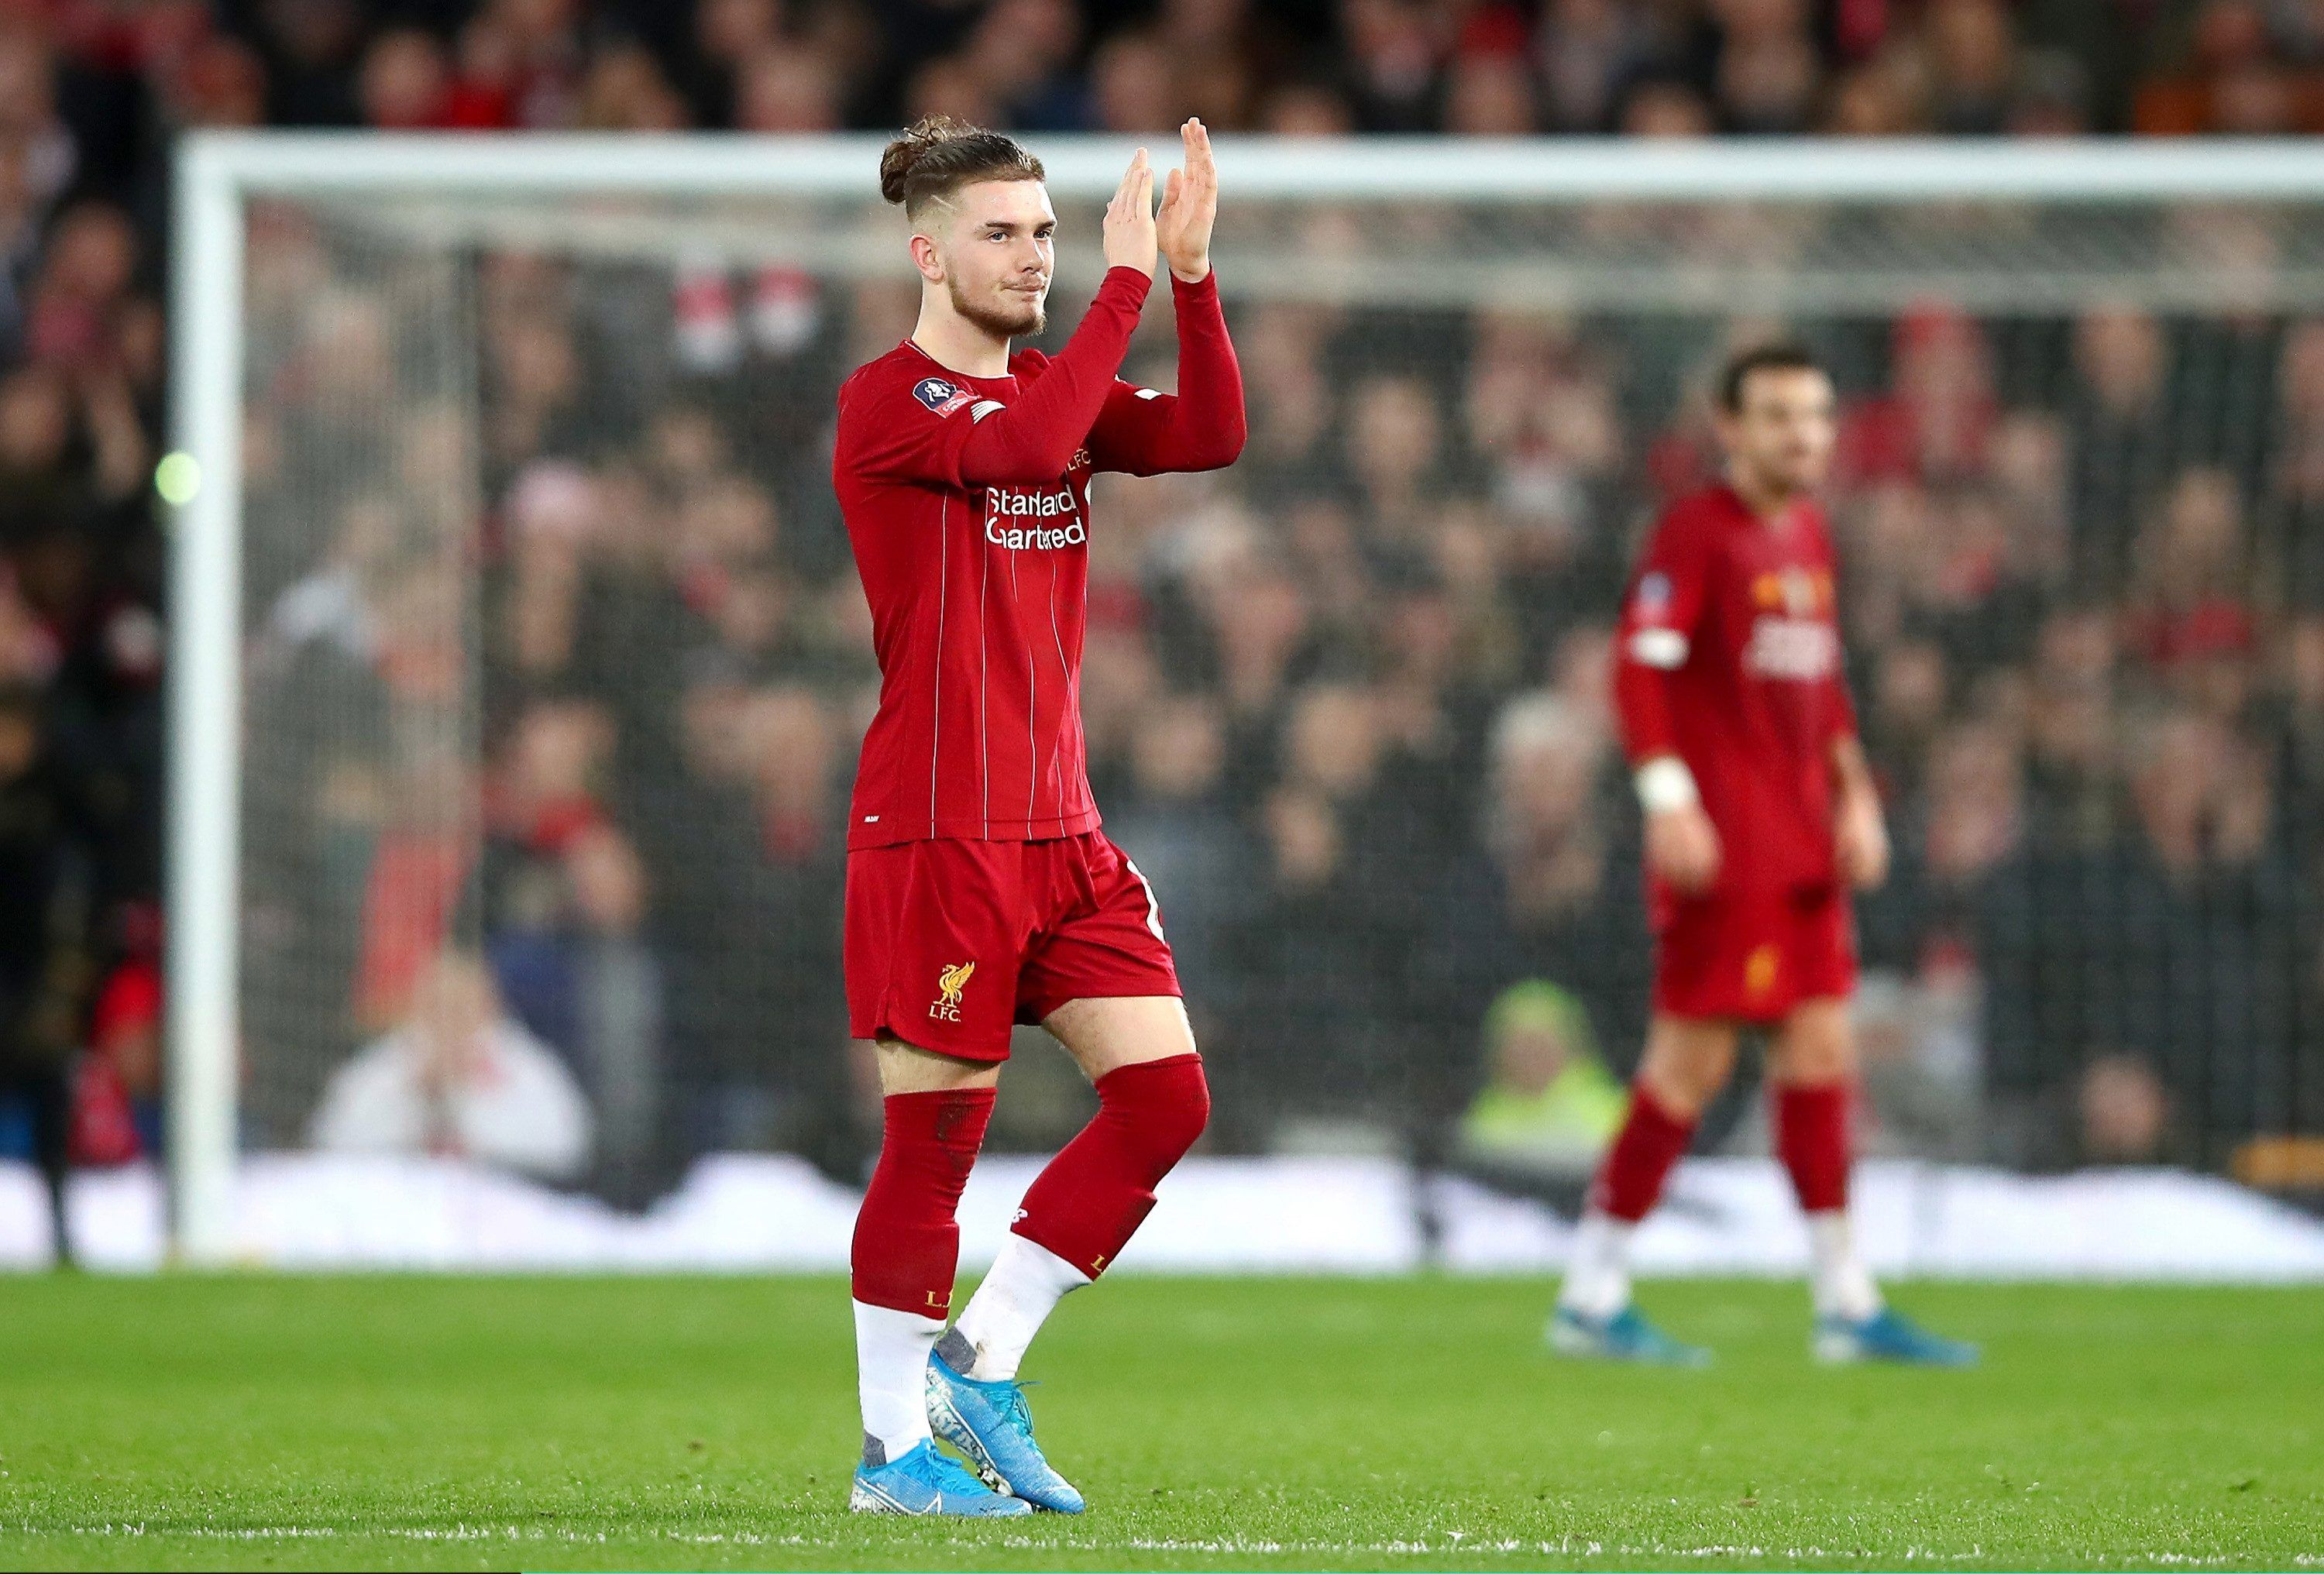 Liverpool Wonderkid Harvey Elliott Squares Up To Enormous Benfica Goalkeeper During Uefa Youth League Clash Football Soccer Spo In 2020 Goalkeeper Liverpool League